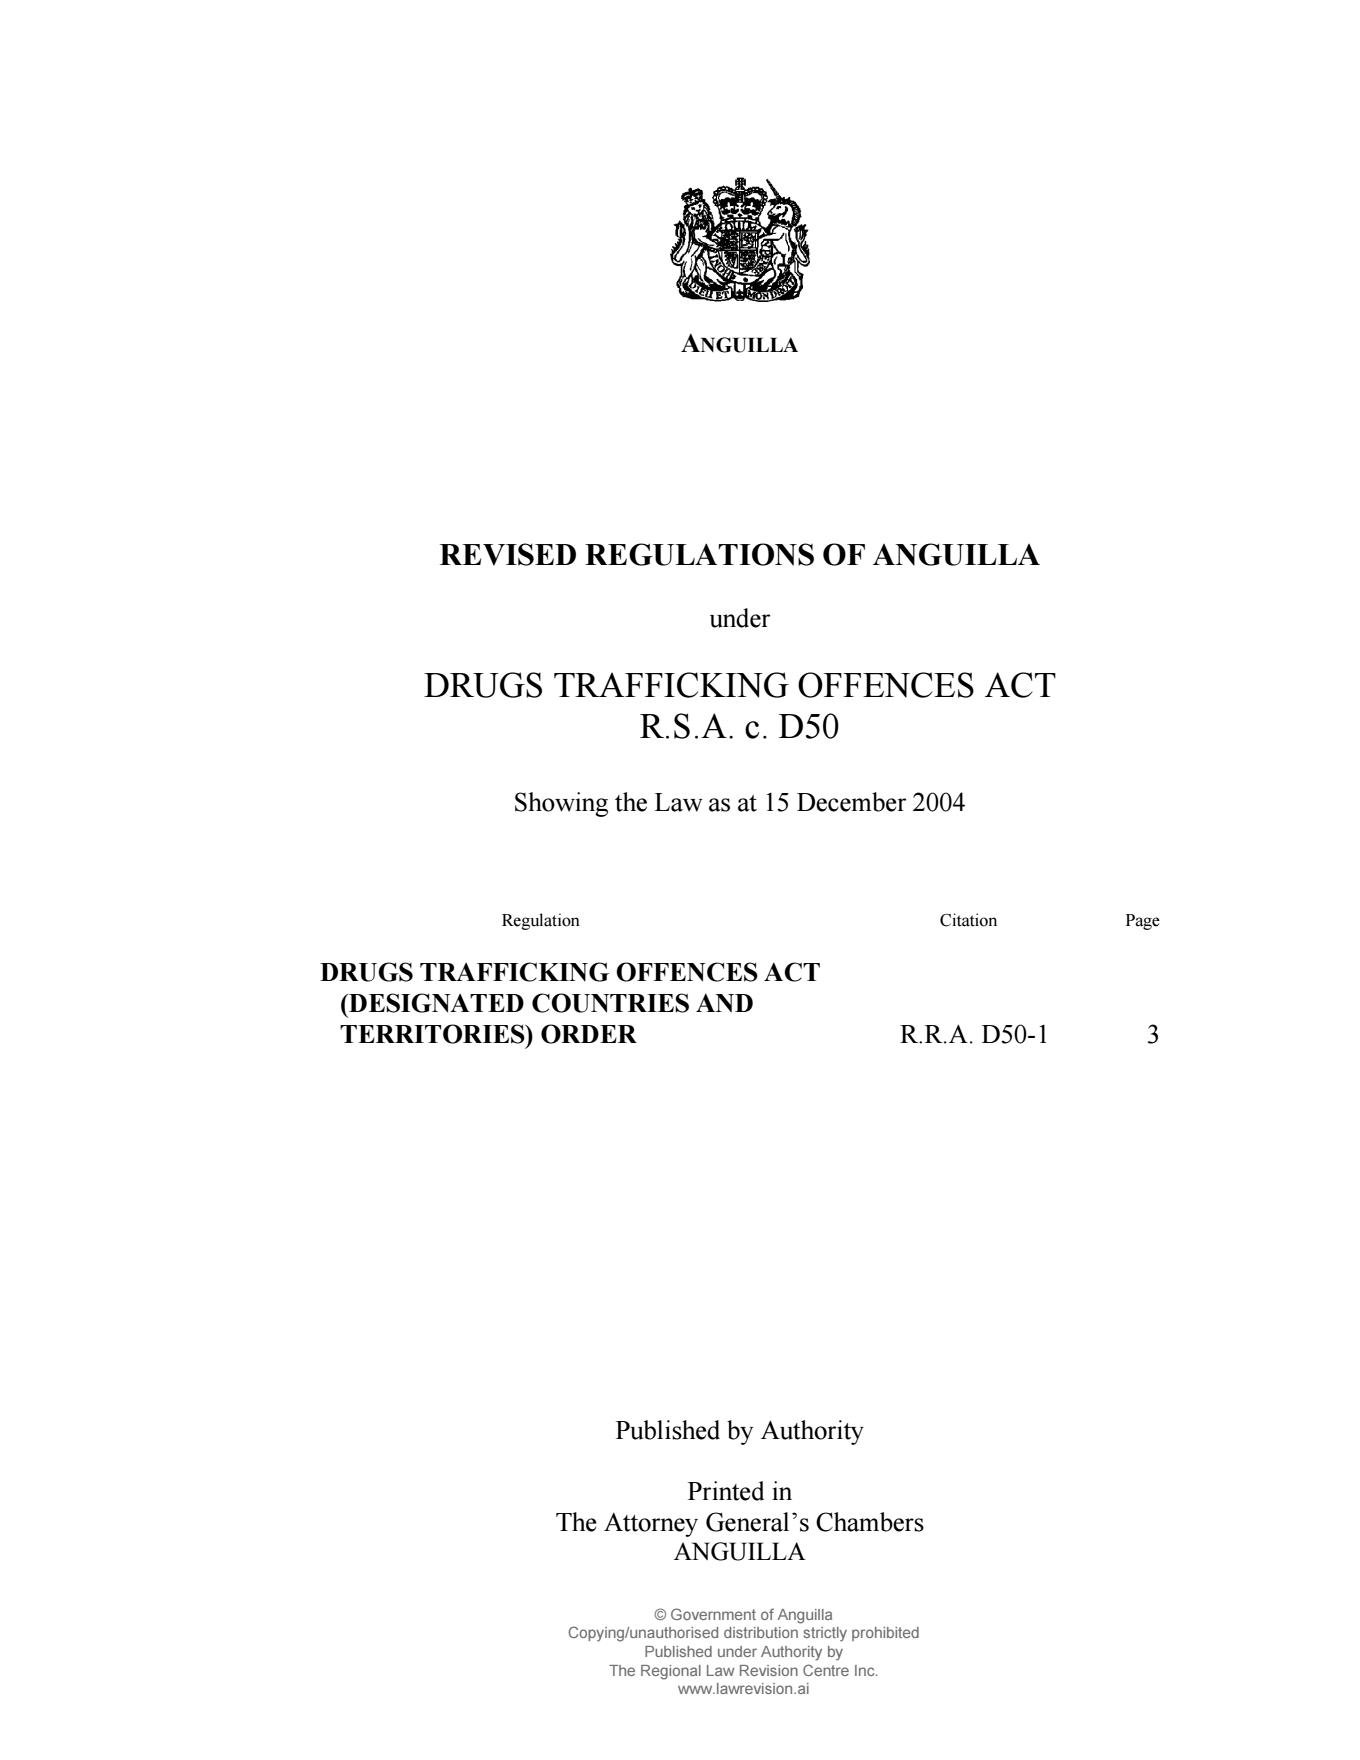 Index of /laws/D050-01-Drugs Trafficking Offences Act (Designated